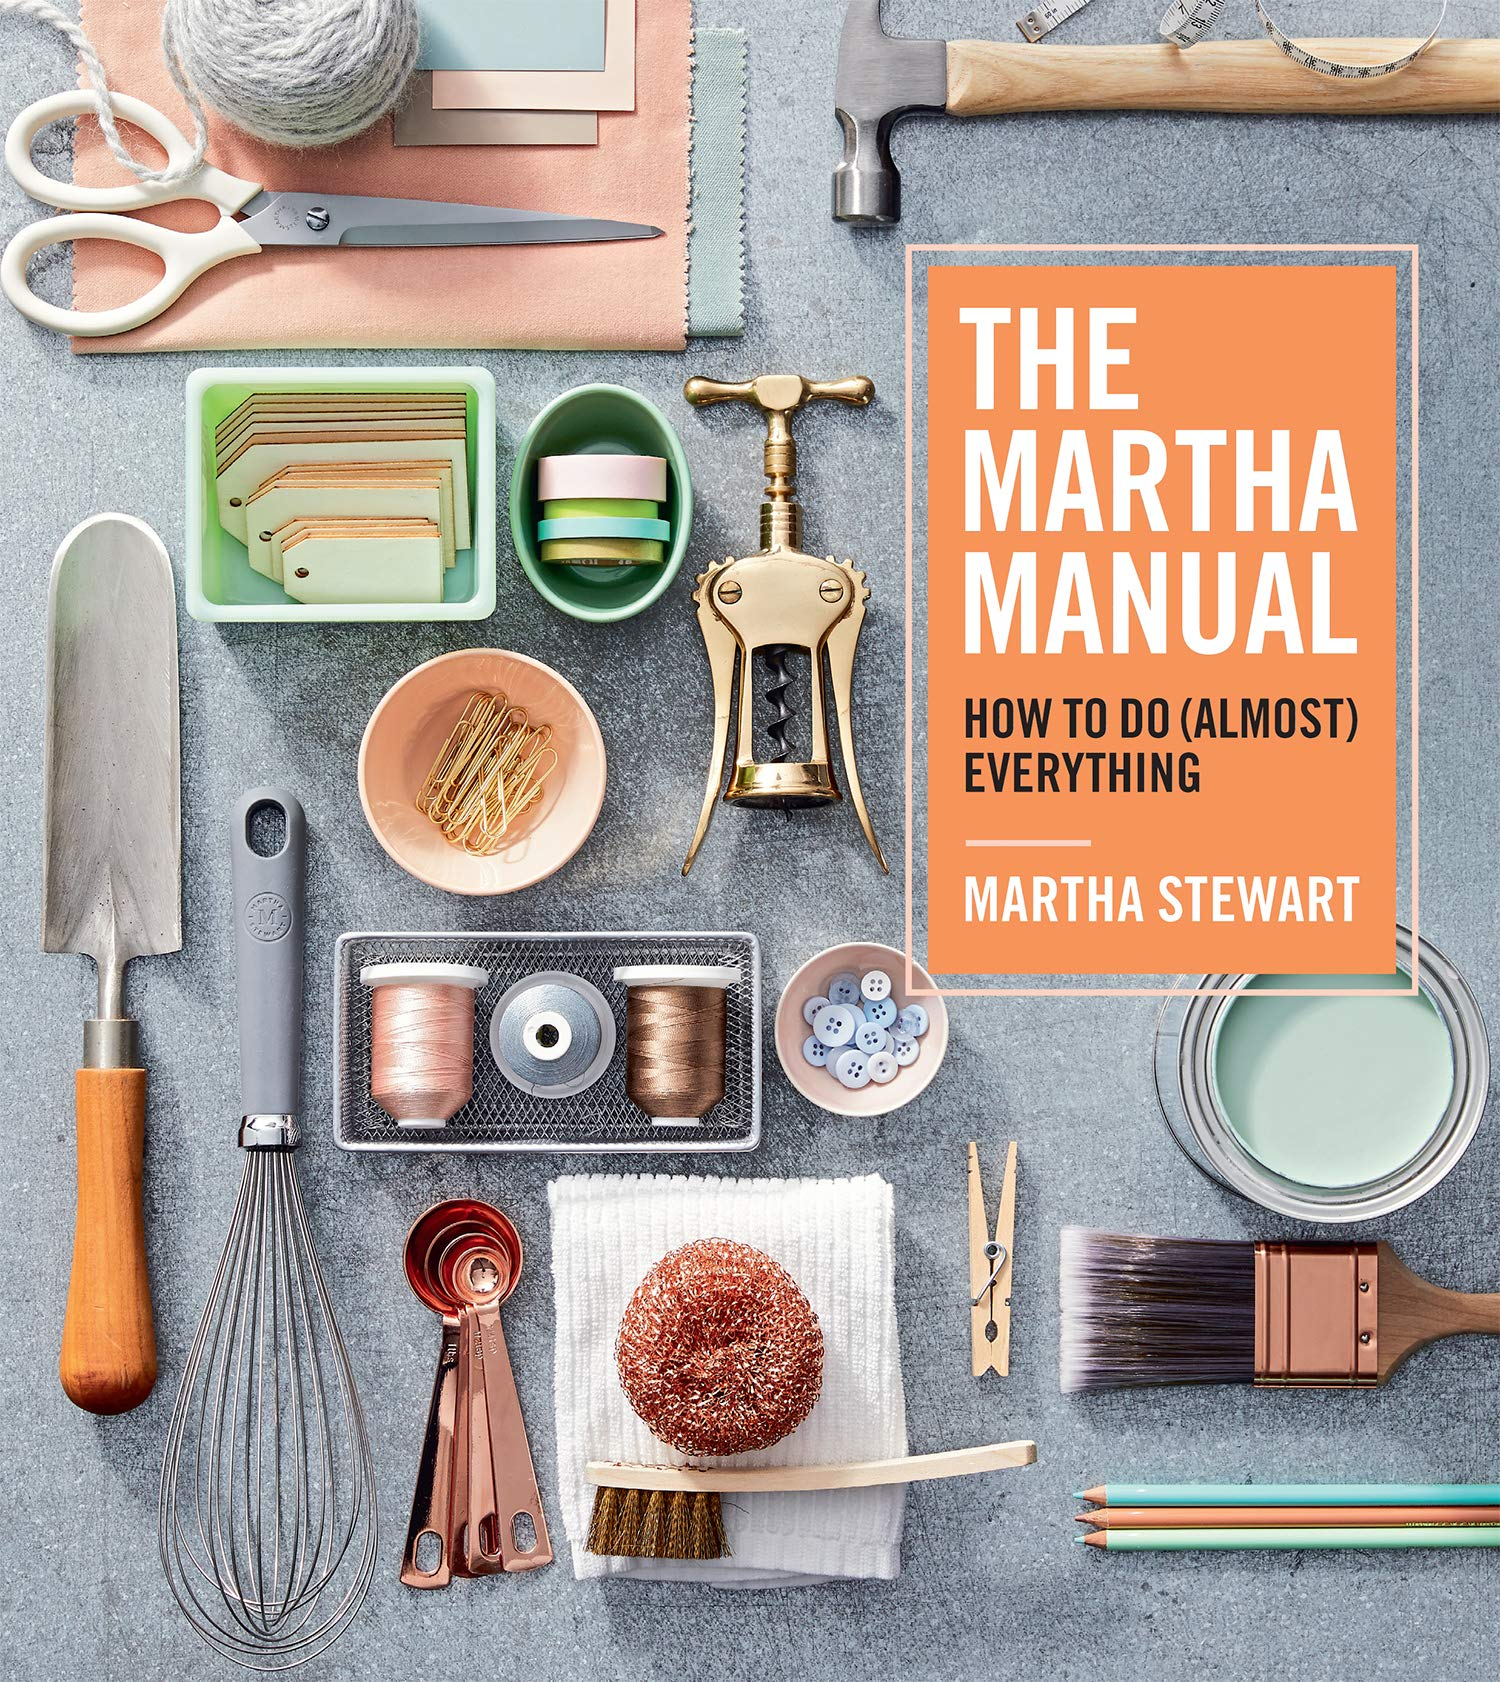 Buy Martha Manual Now!